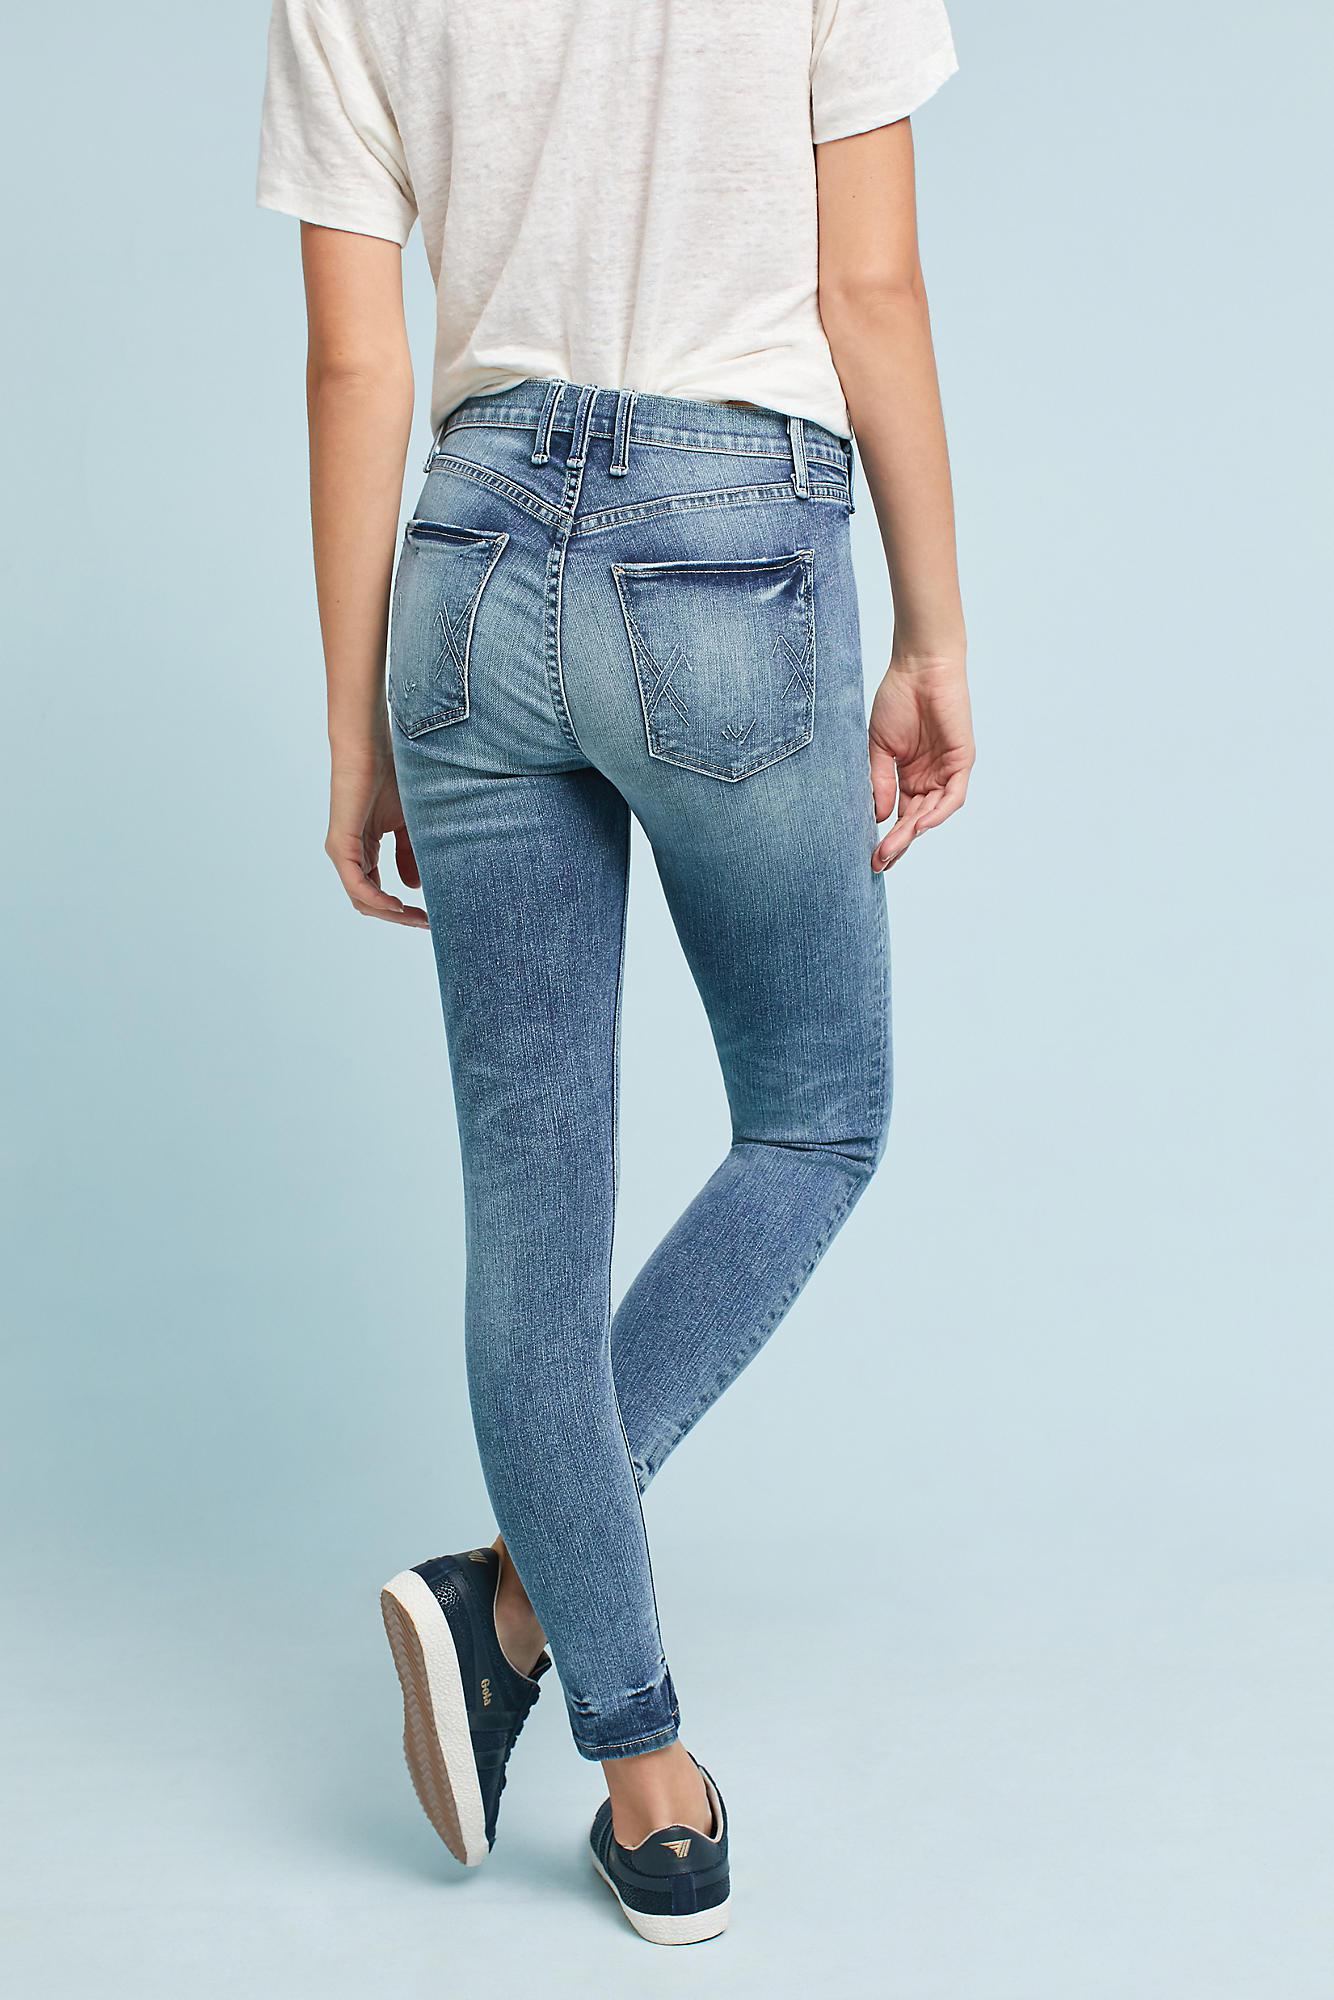 Clearance Browse Wholesale Price Online McGuire Denim Mid-Rise Skinny Jeans Cheap Sale Manchester Genuine Online Discount Cost qJgmb7o